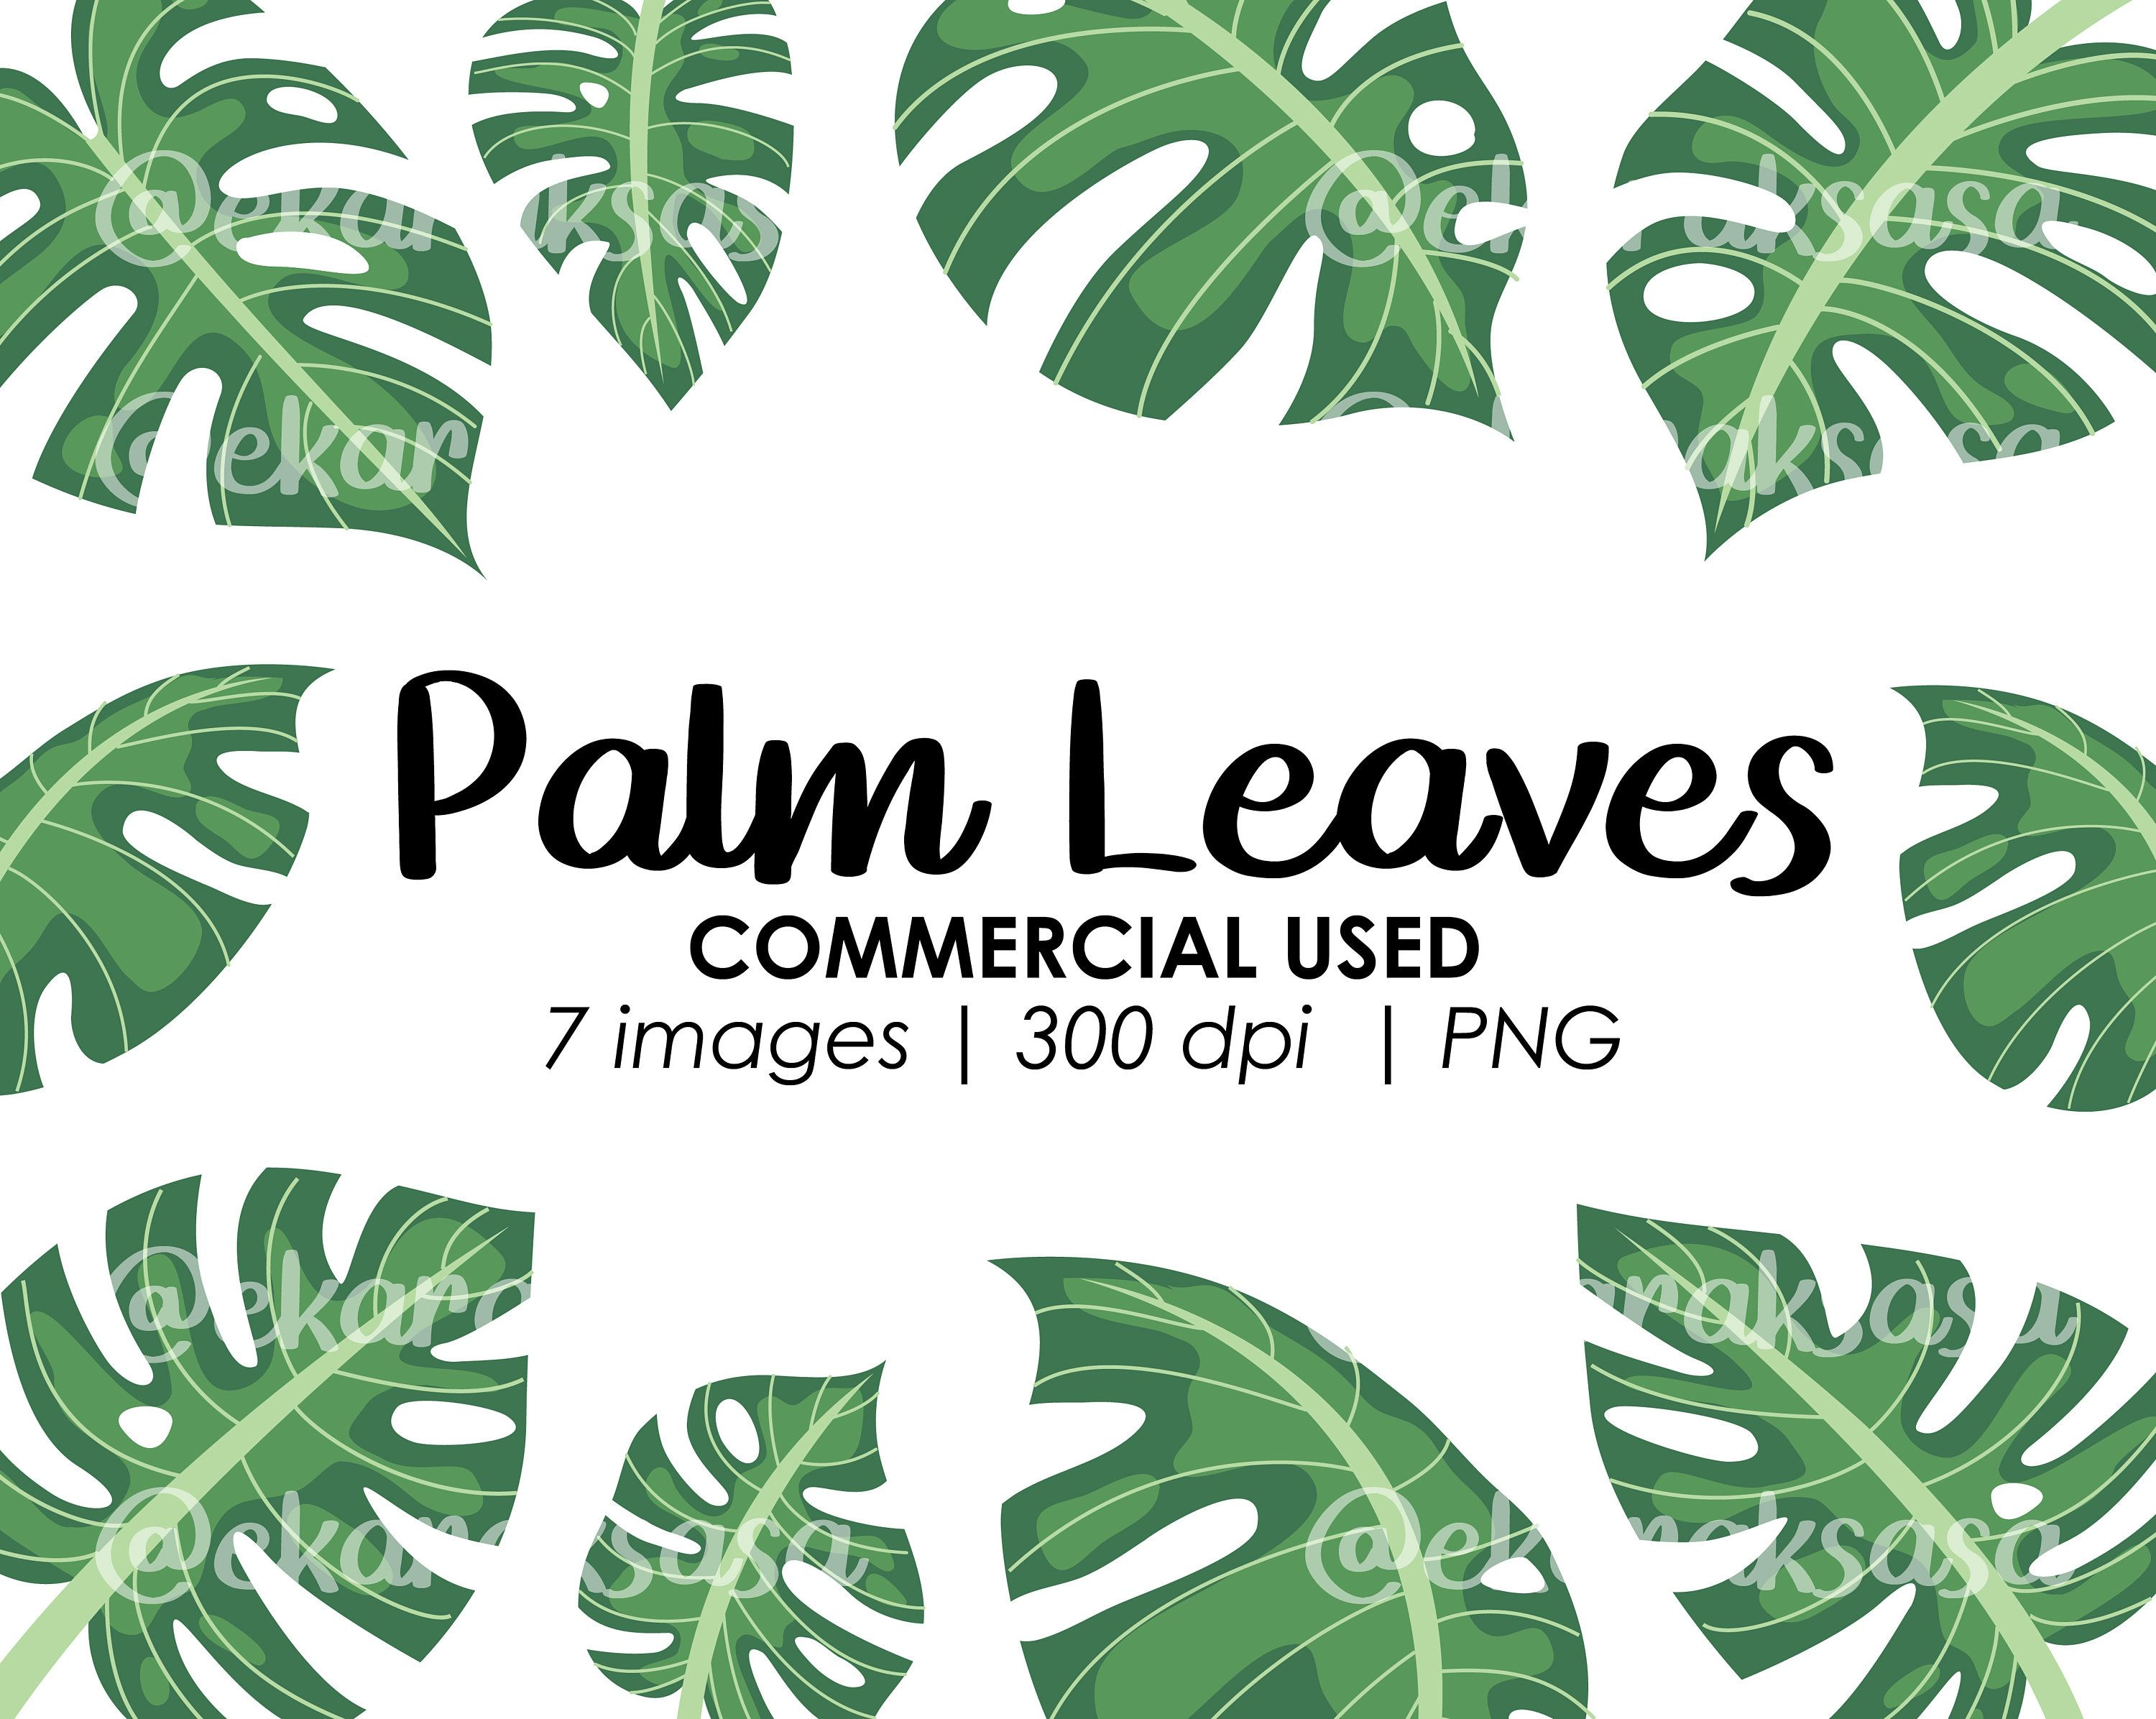 Palm Leaves Clipart Jungle Leaves Png Plant Illustration Etsy Plant Illustration Leaf Clipart Clip Art